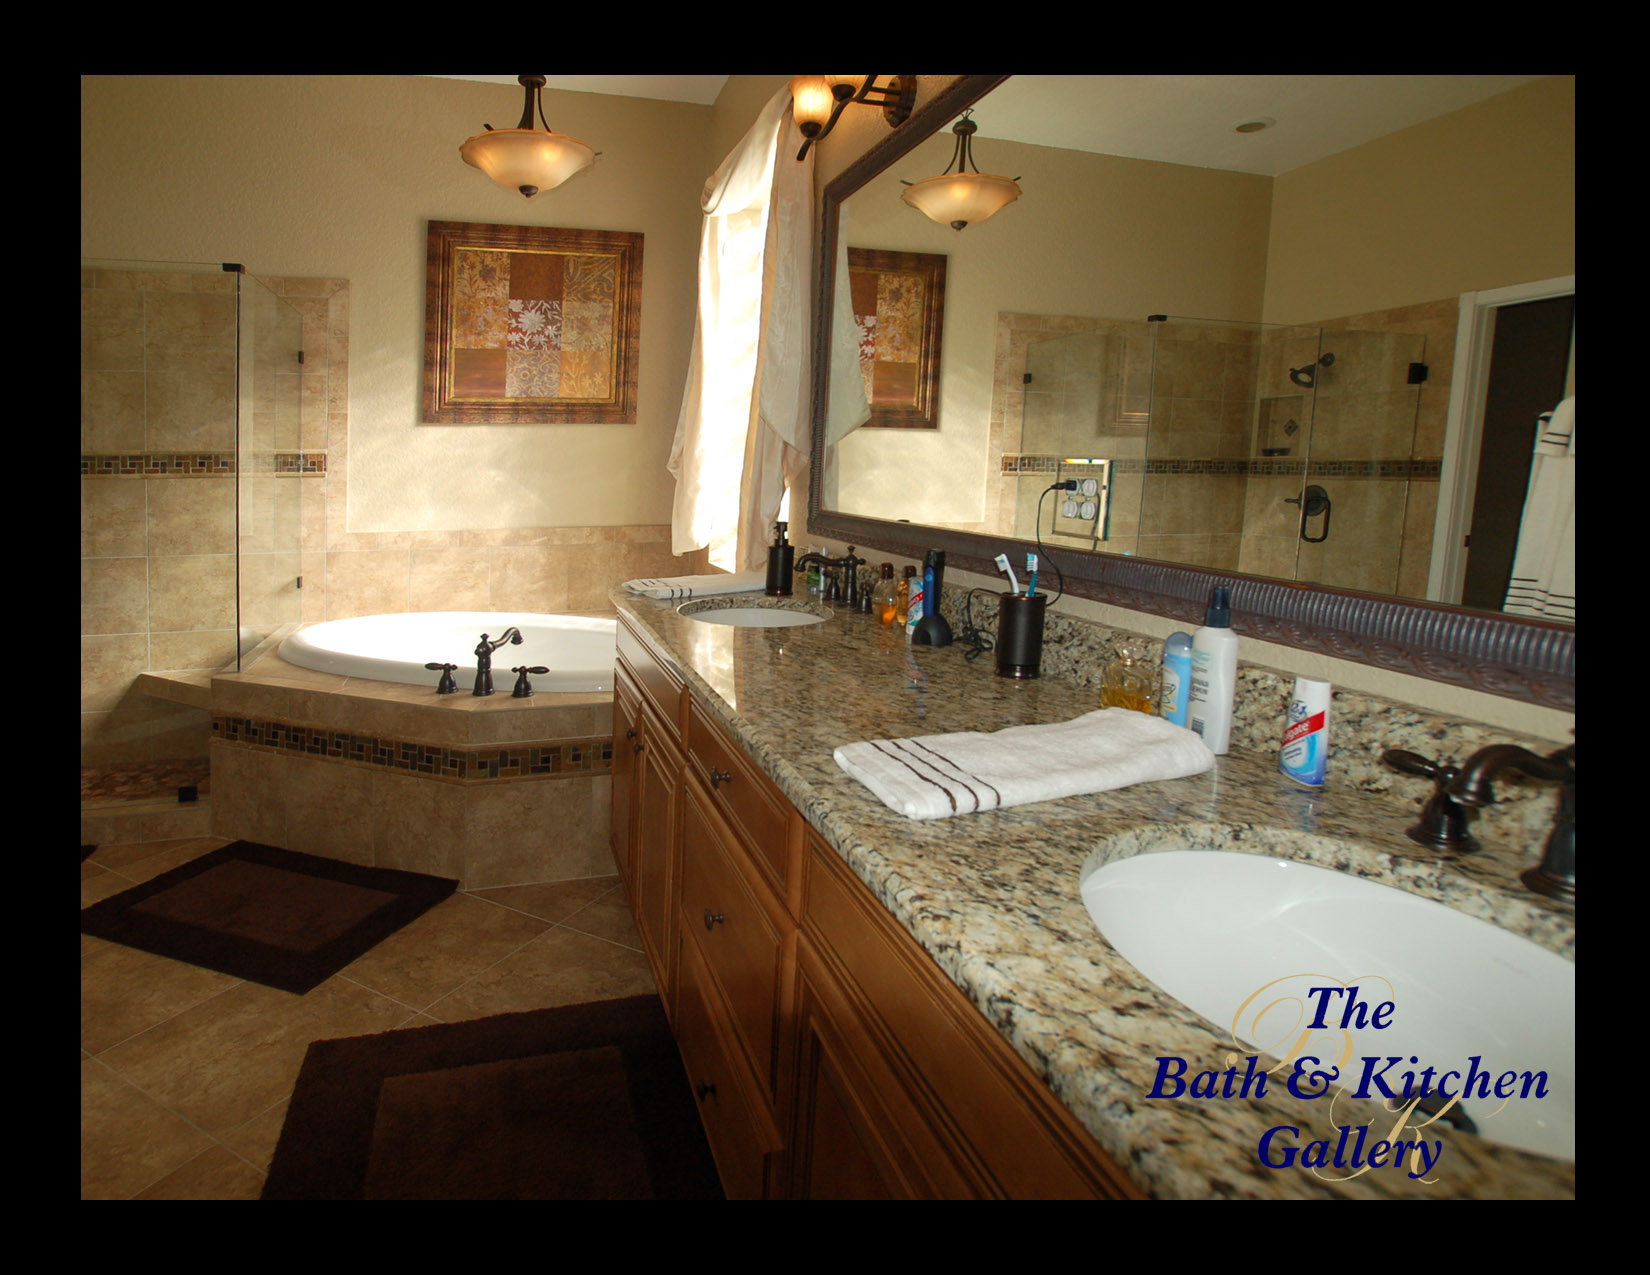 Bathroom remodeling gallery tampa bathroom remodeling for Bath remodel tampa